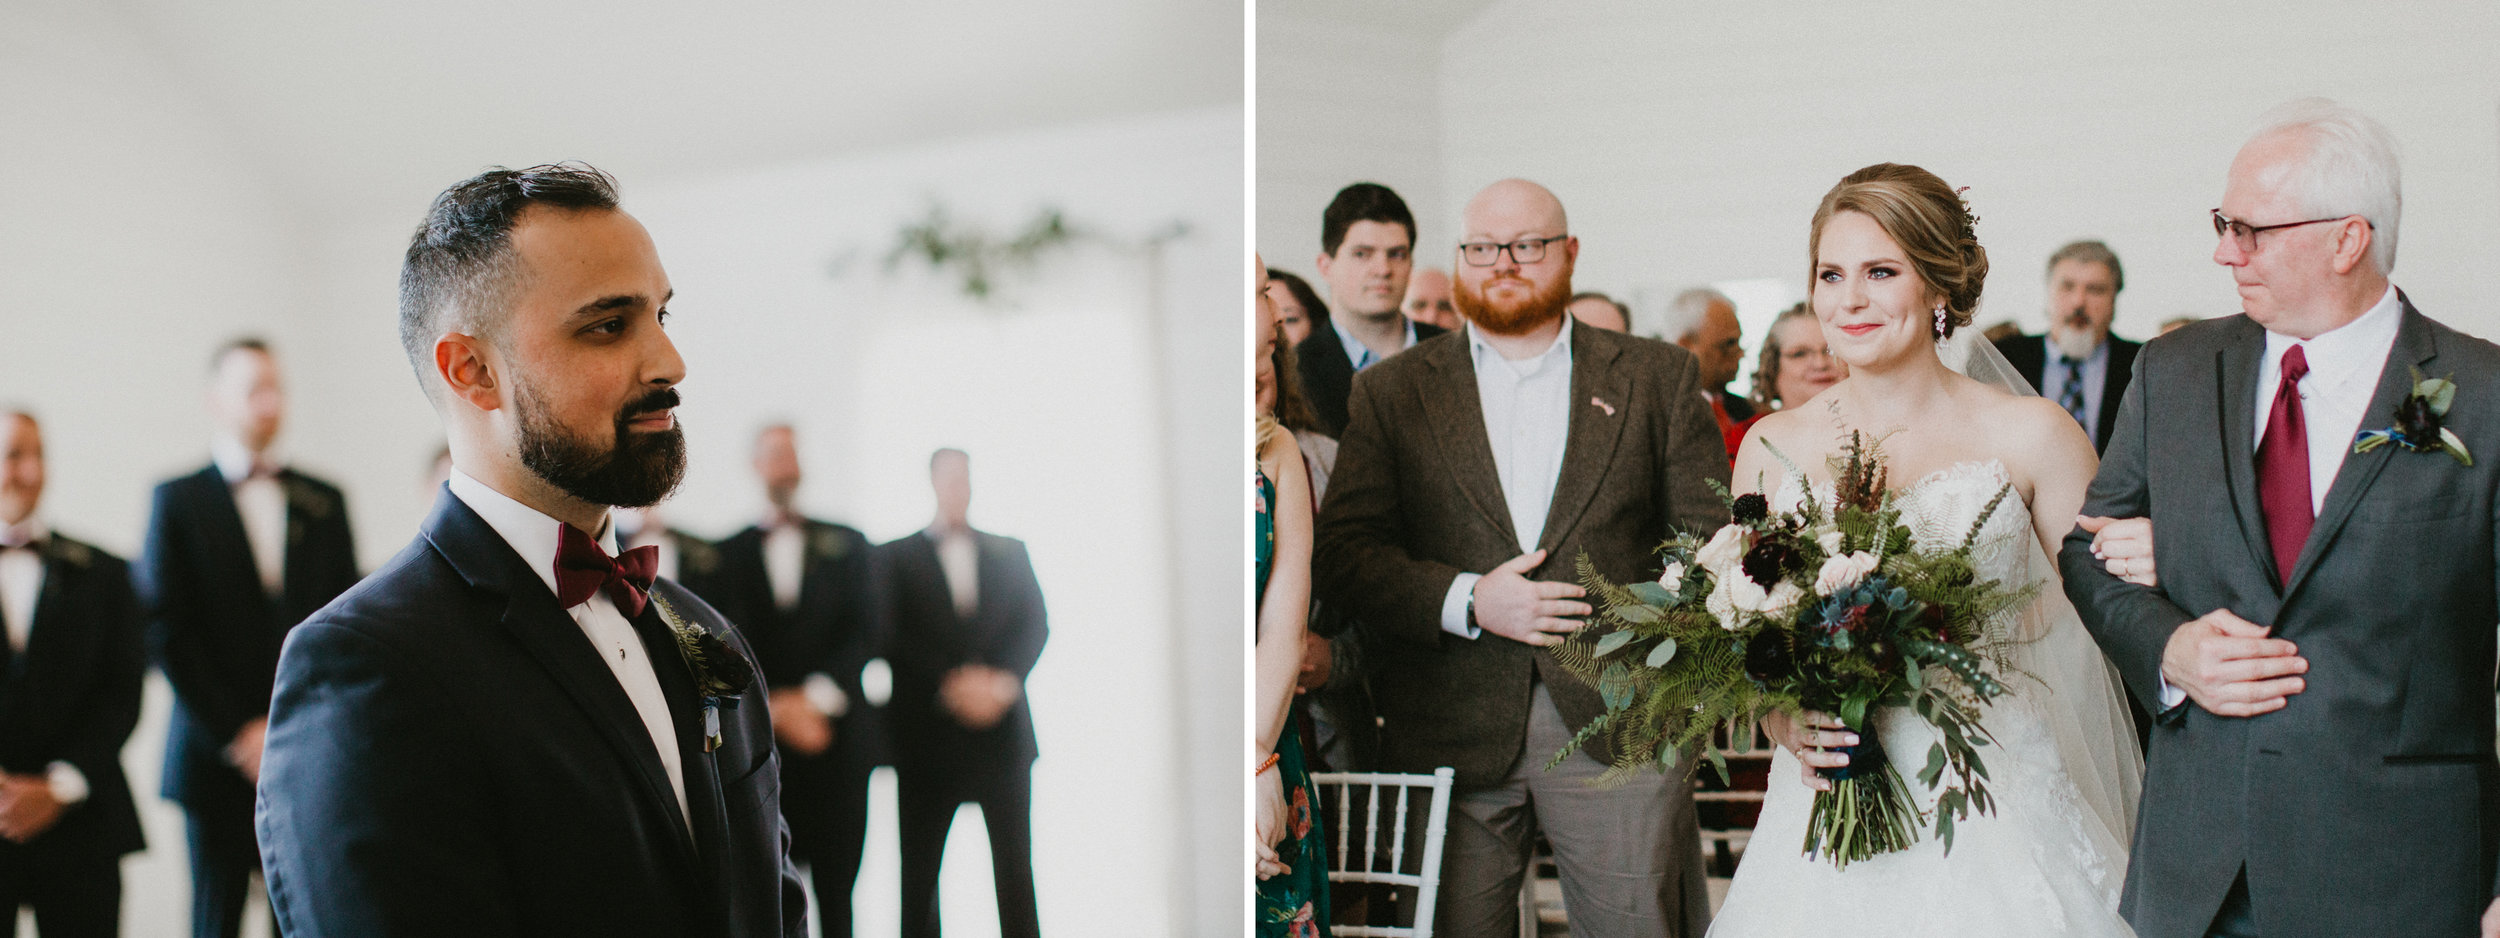 The Farmhouse Ceremony Walking down the aisle.jpg